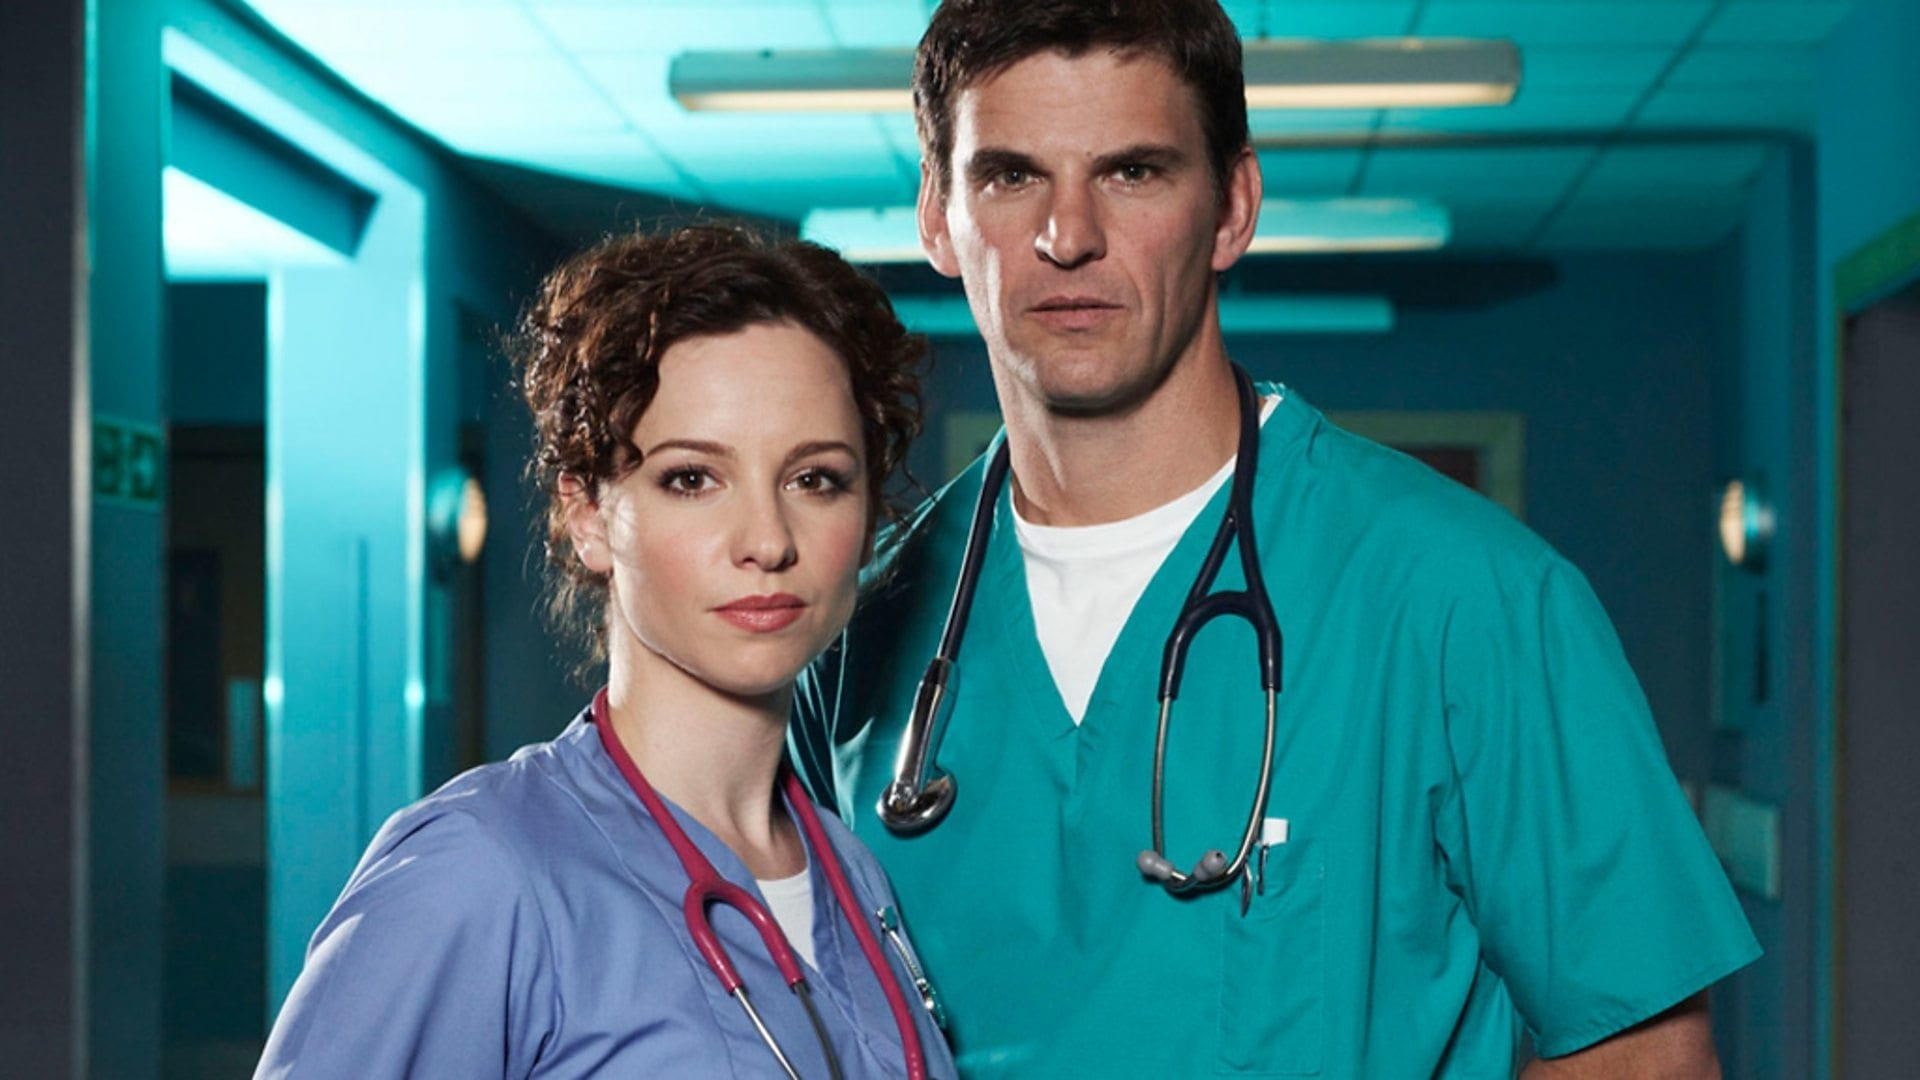 Casualty Season 25 :Episode 46  When You're Smiling